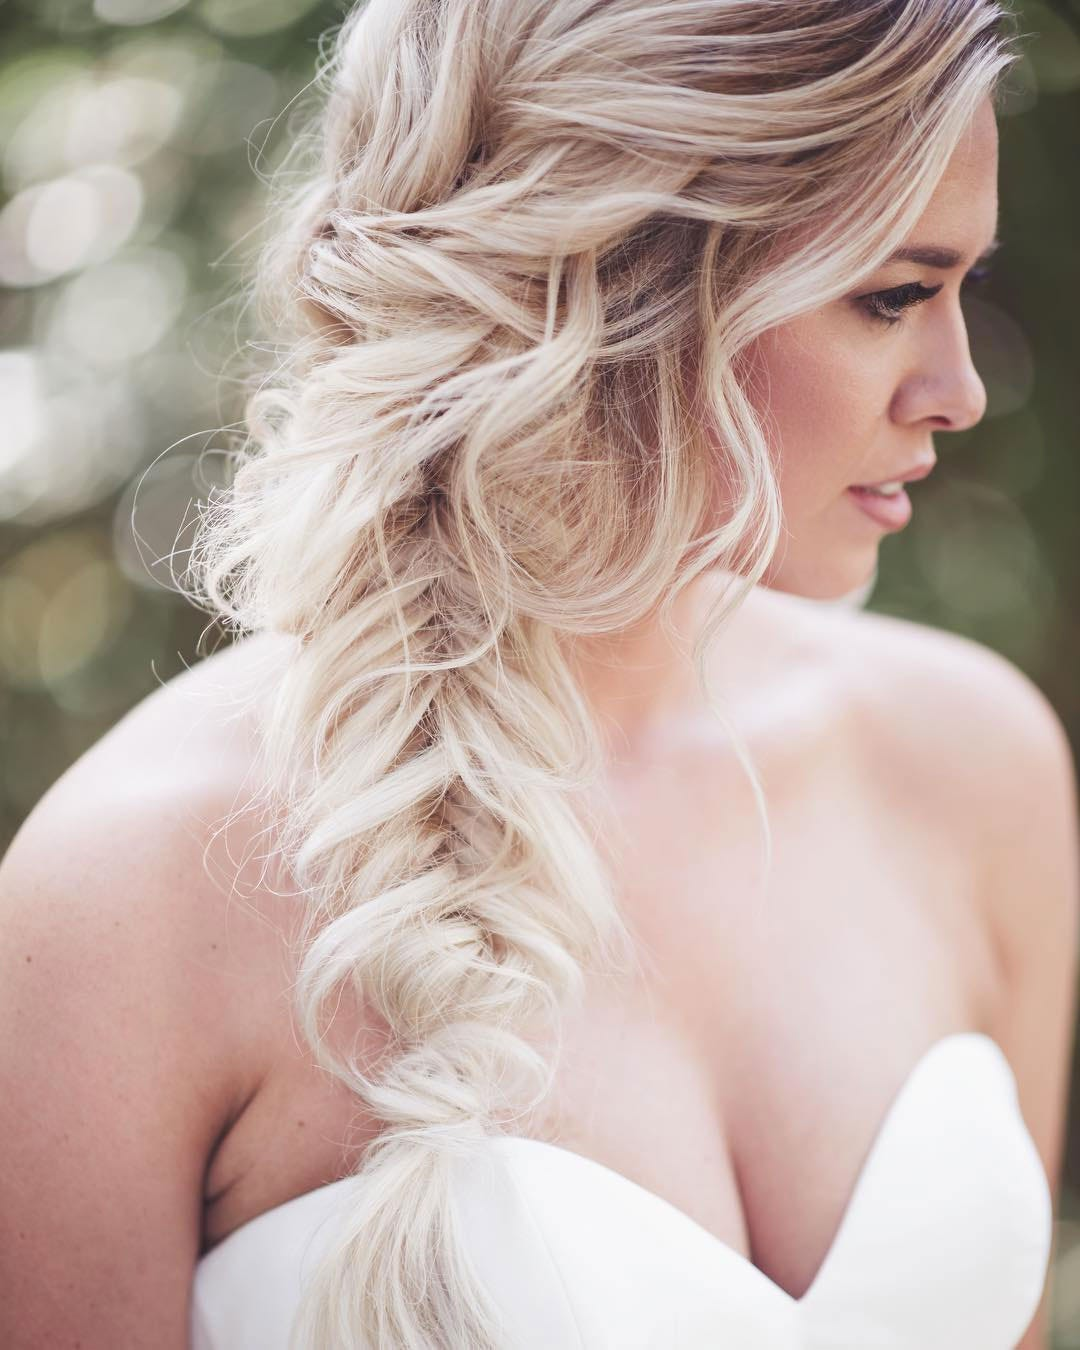 The Best Bridal Hairstyles For The Big Day